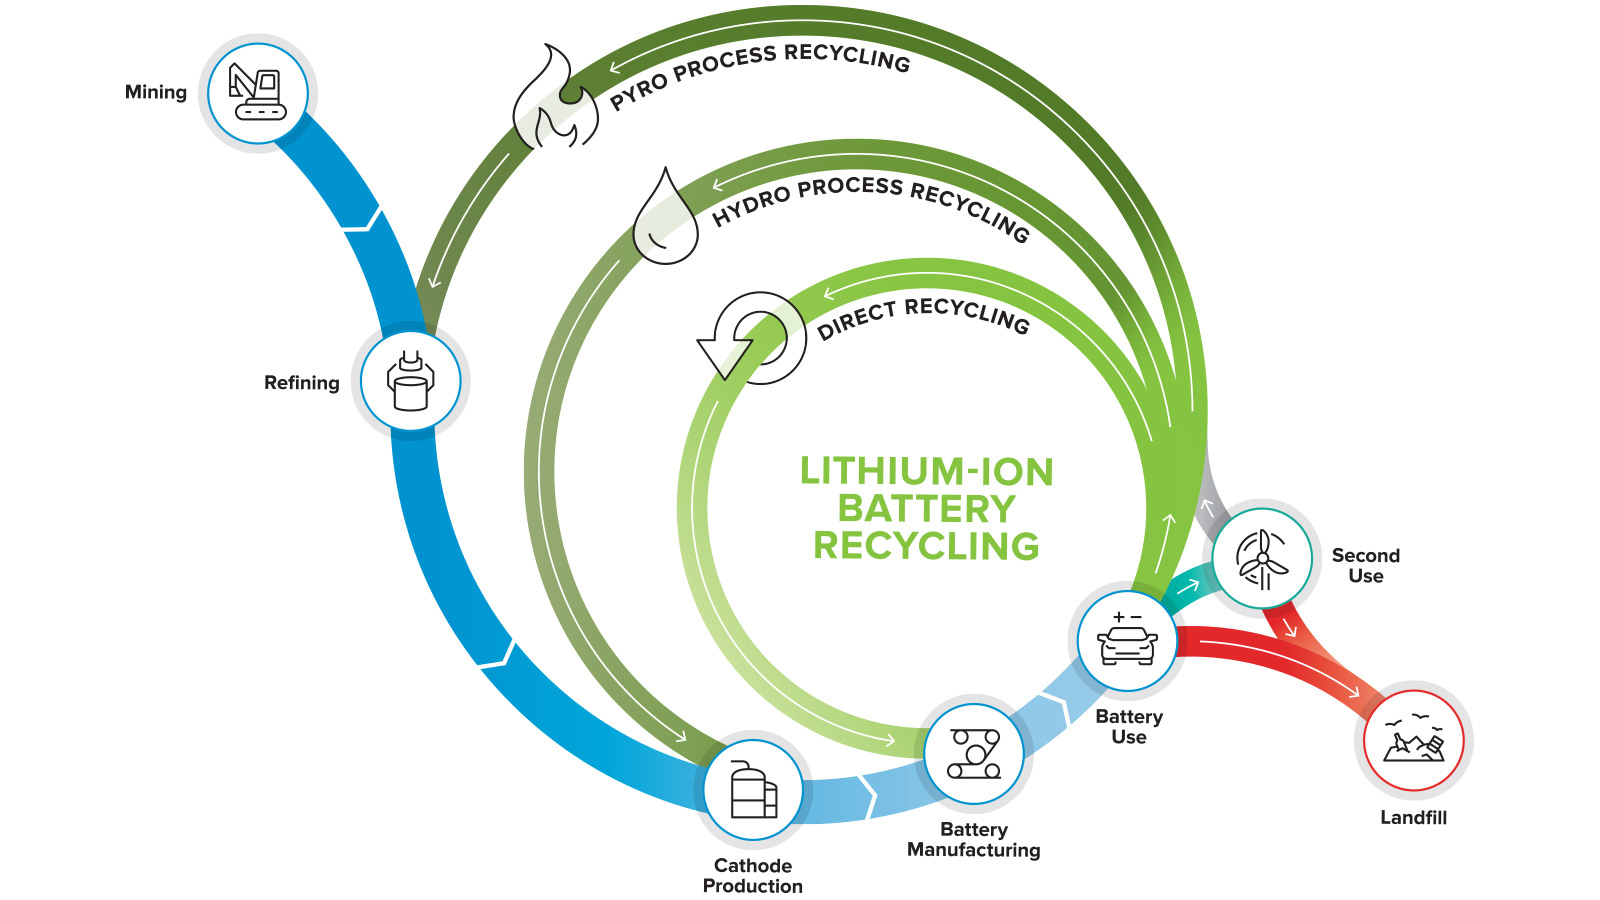 A goal of the ReCell Center is to drive toward closed-loop recycling, where materials from spent batteries are directly recycled, minimizing energy use and waste by eliminating mining and processing steps. (Image by Argonne National Laboratory.)